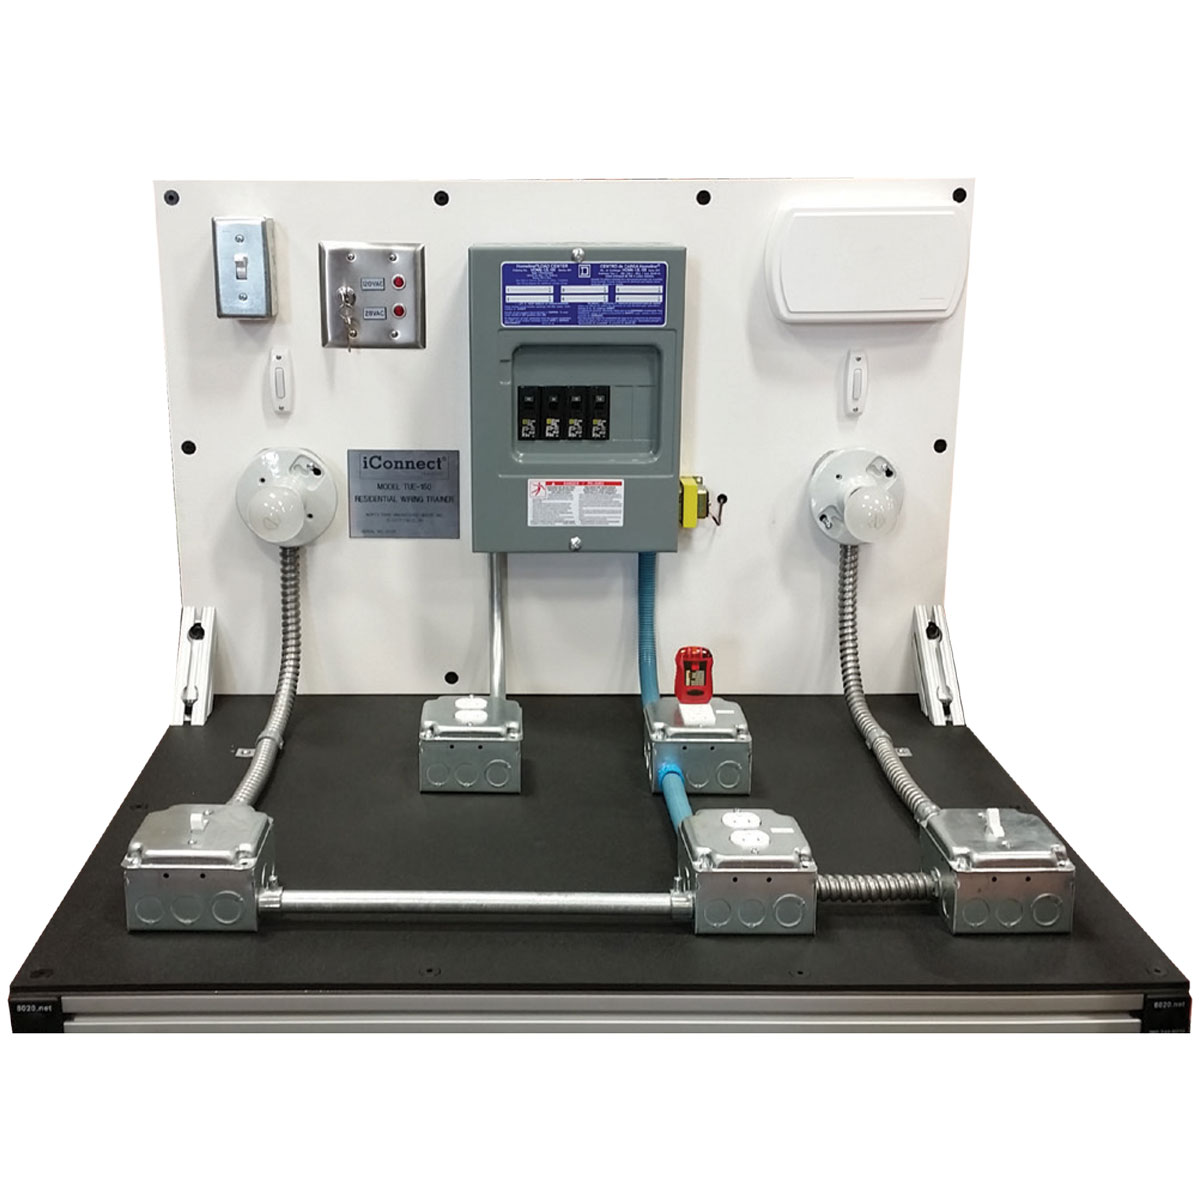 TUE-150 Residential Wiring Trainer - Trainer Panel - iConnect Training